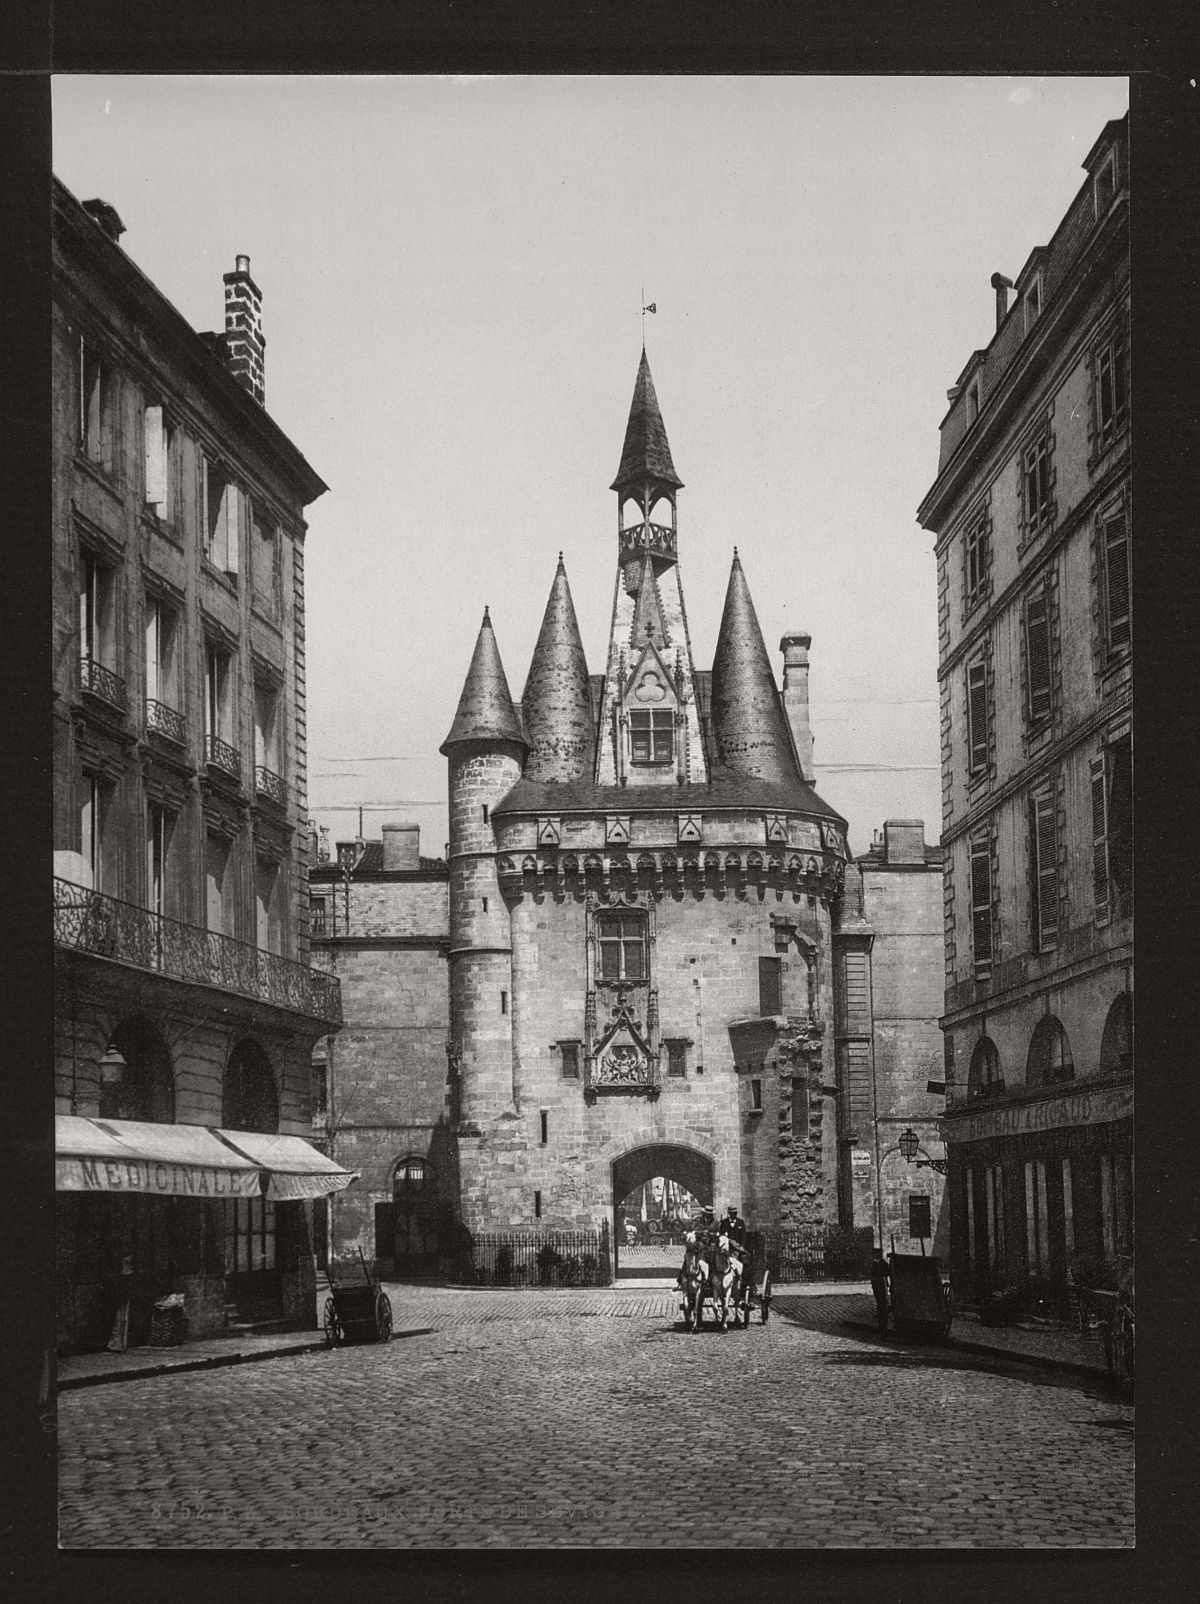 historic-bw-photos-of-bordeaux-france-in-19th-century-04